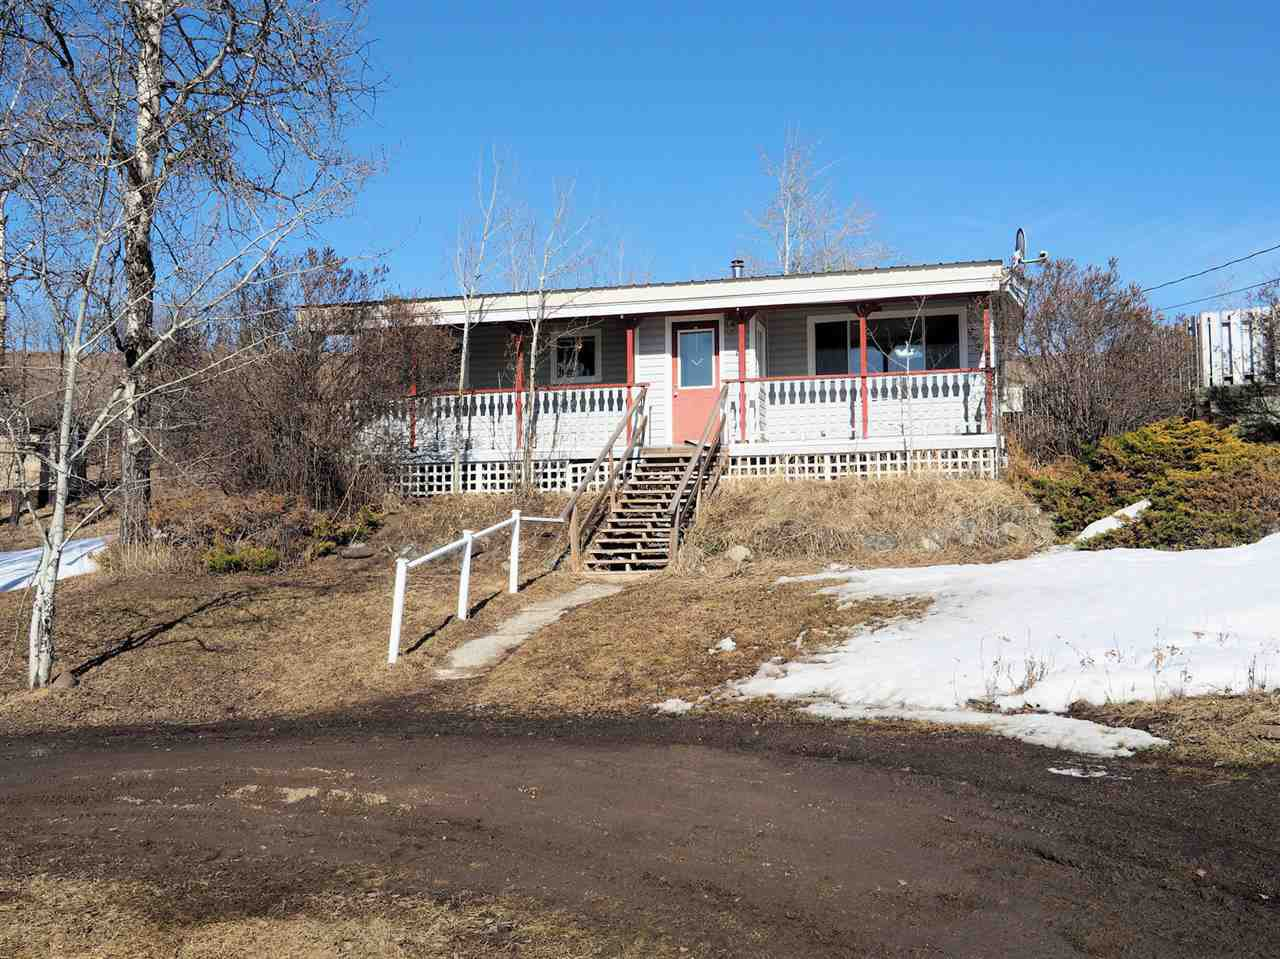 Main Photo: 4939 TELQUA Drive in 108 Mile Ranch: 108 Ranch Manufactured Home for sale (100 Mile House (Zone 10))  : MLS®# R2449243